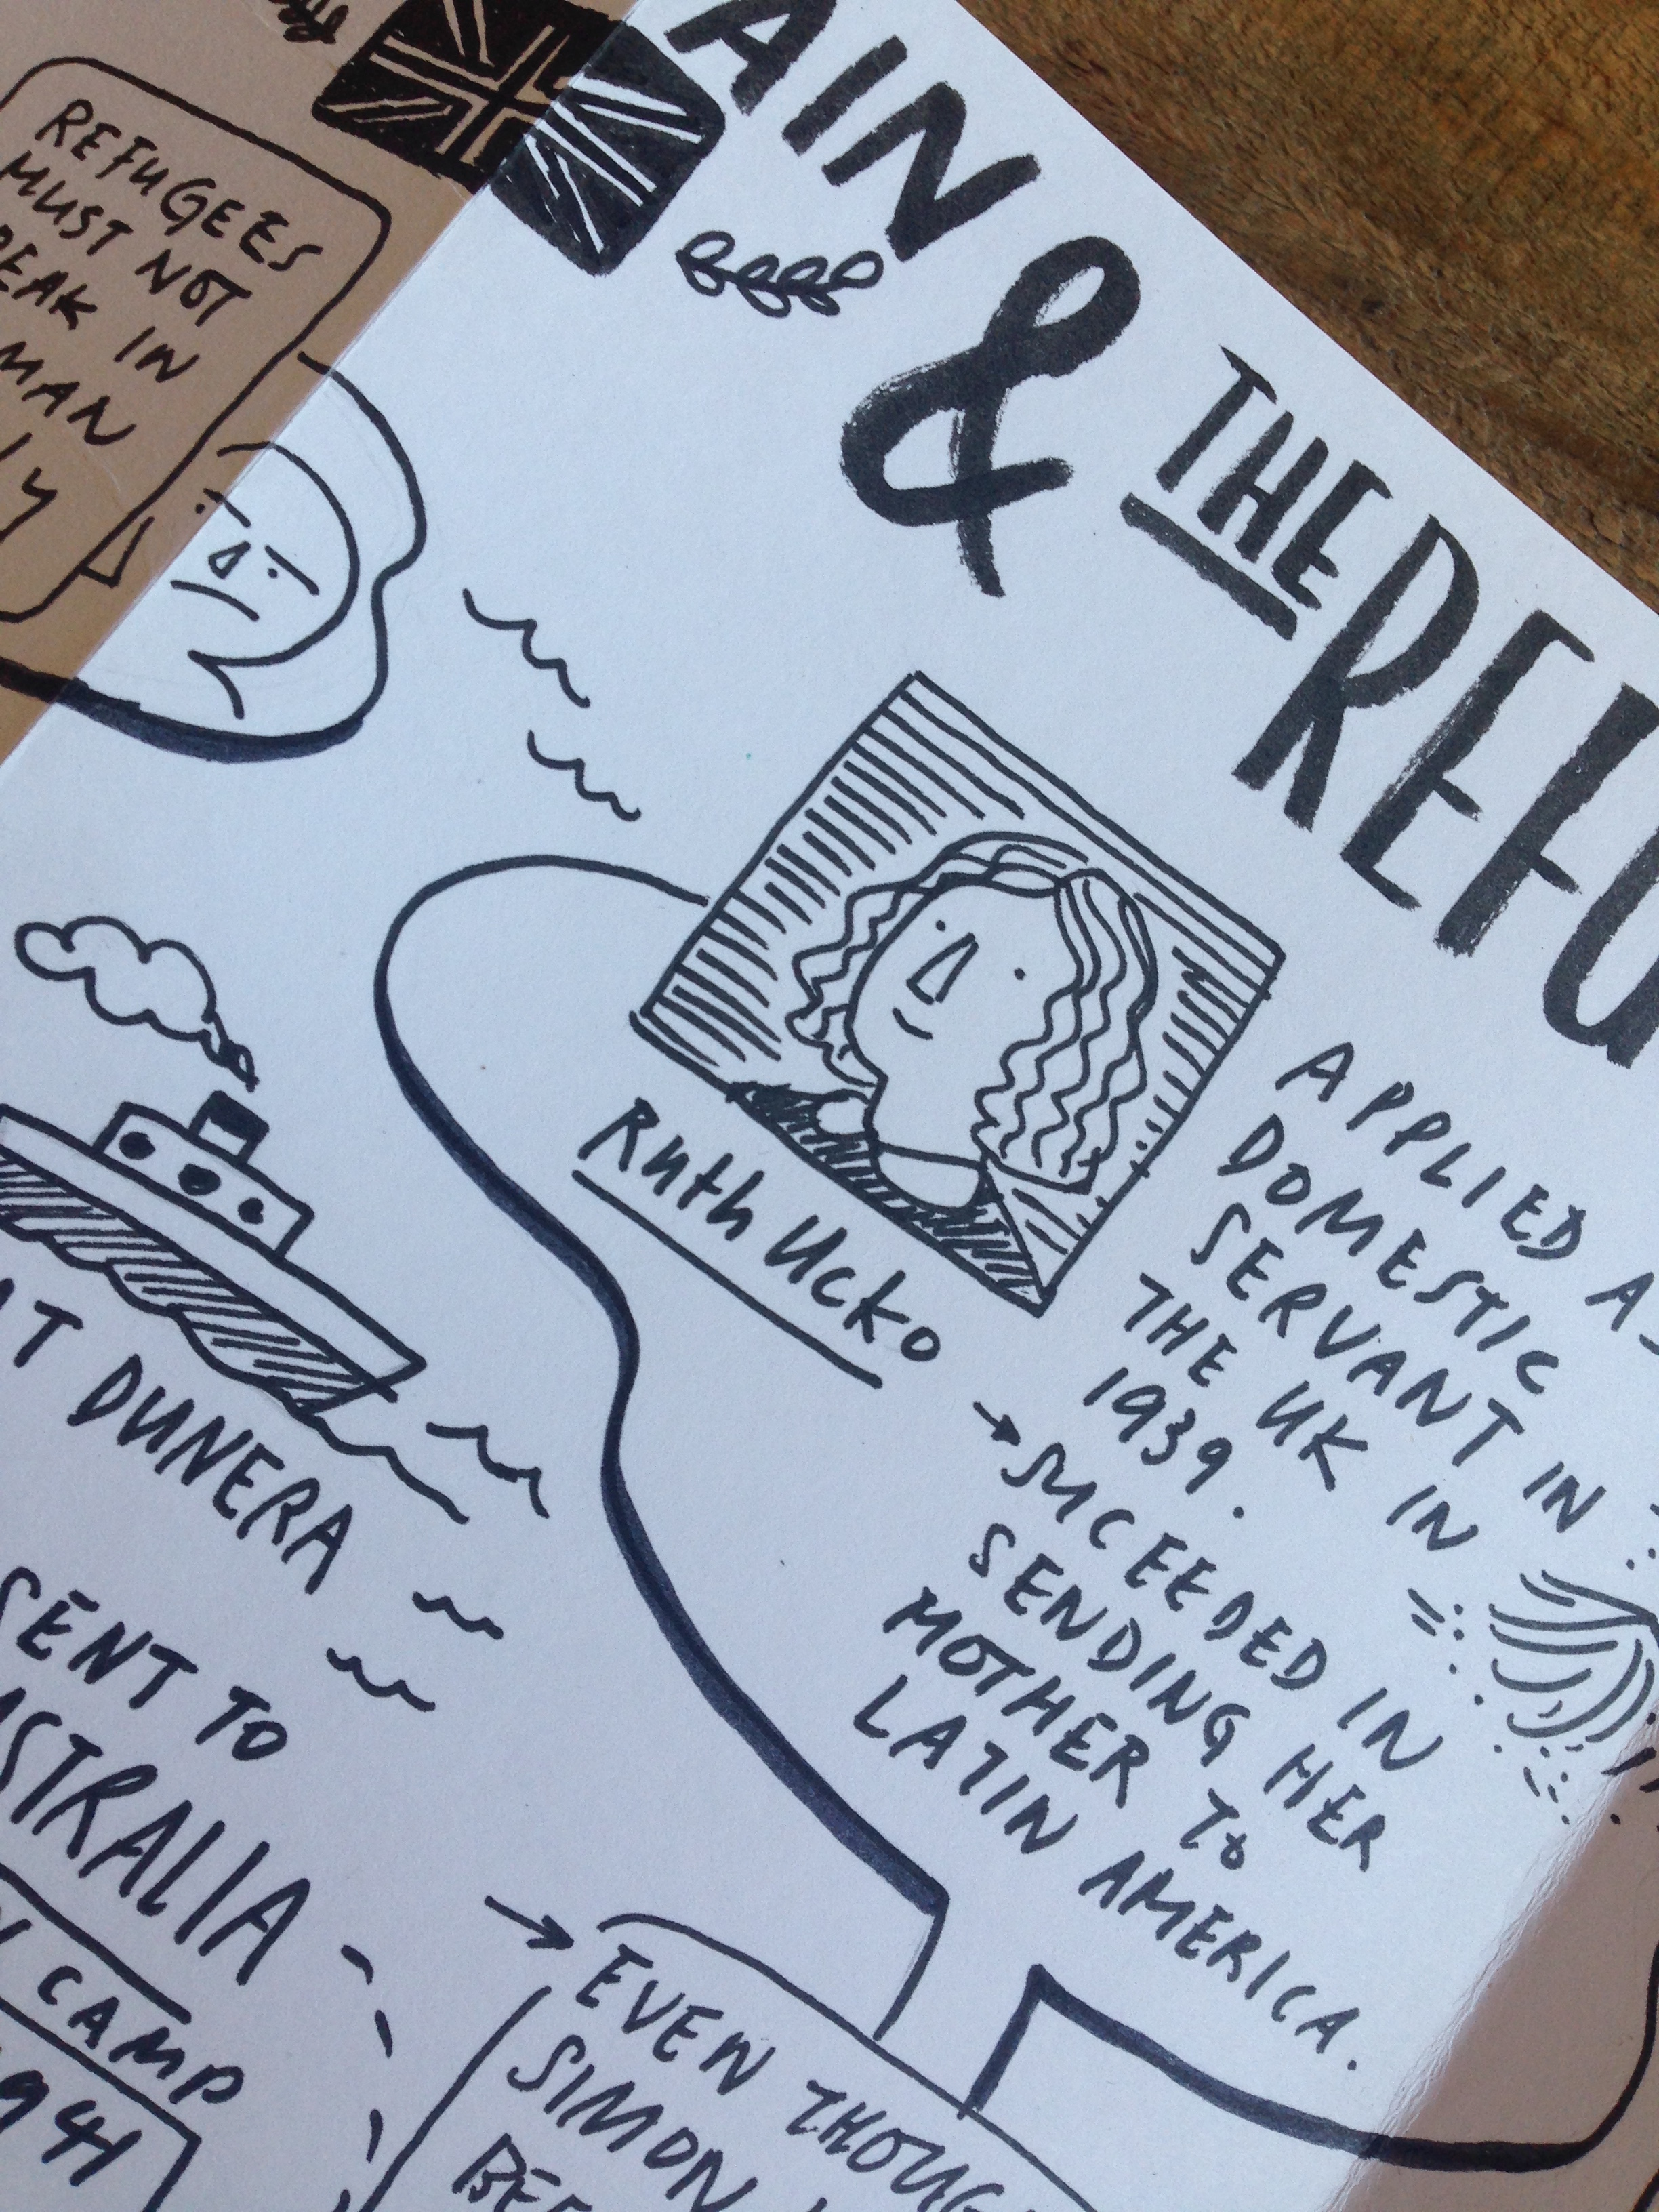 Scriberia sketchnotes of A Bitter Road at The Weiner Library 10